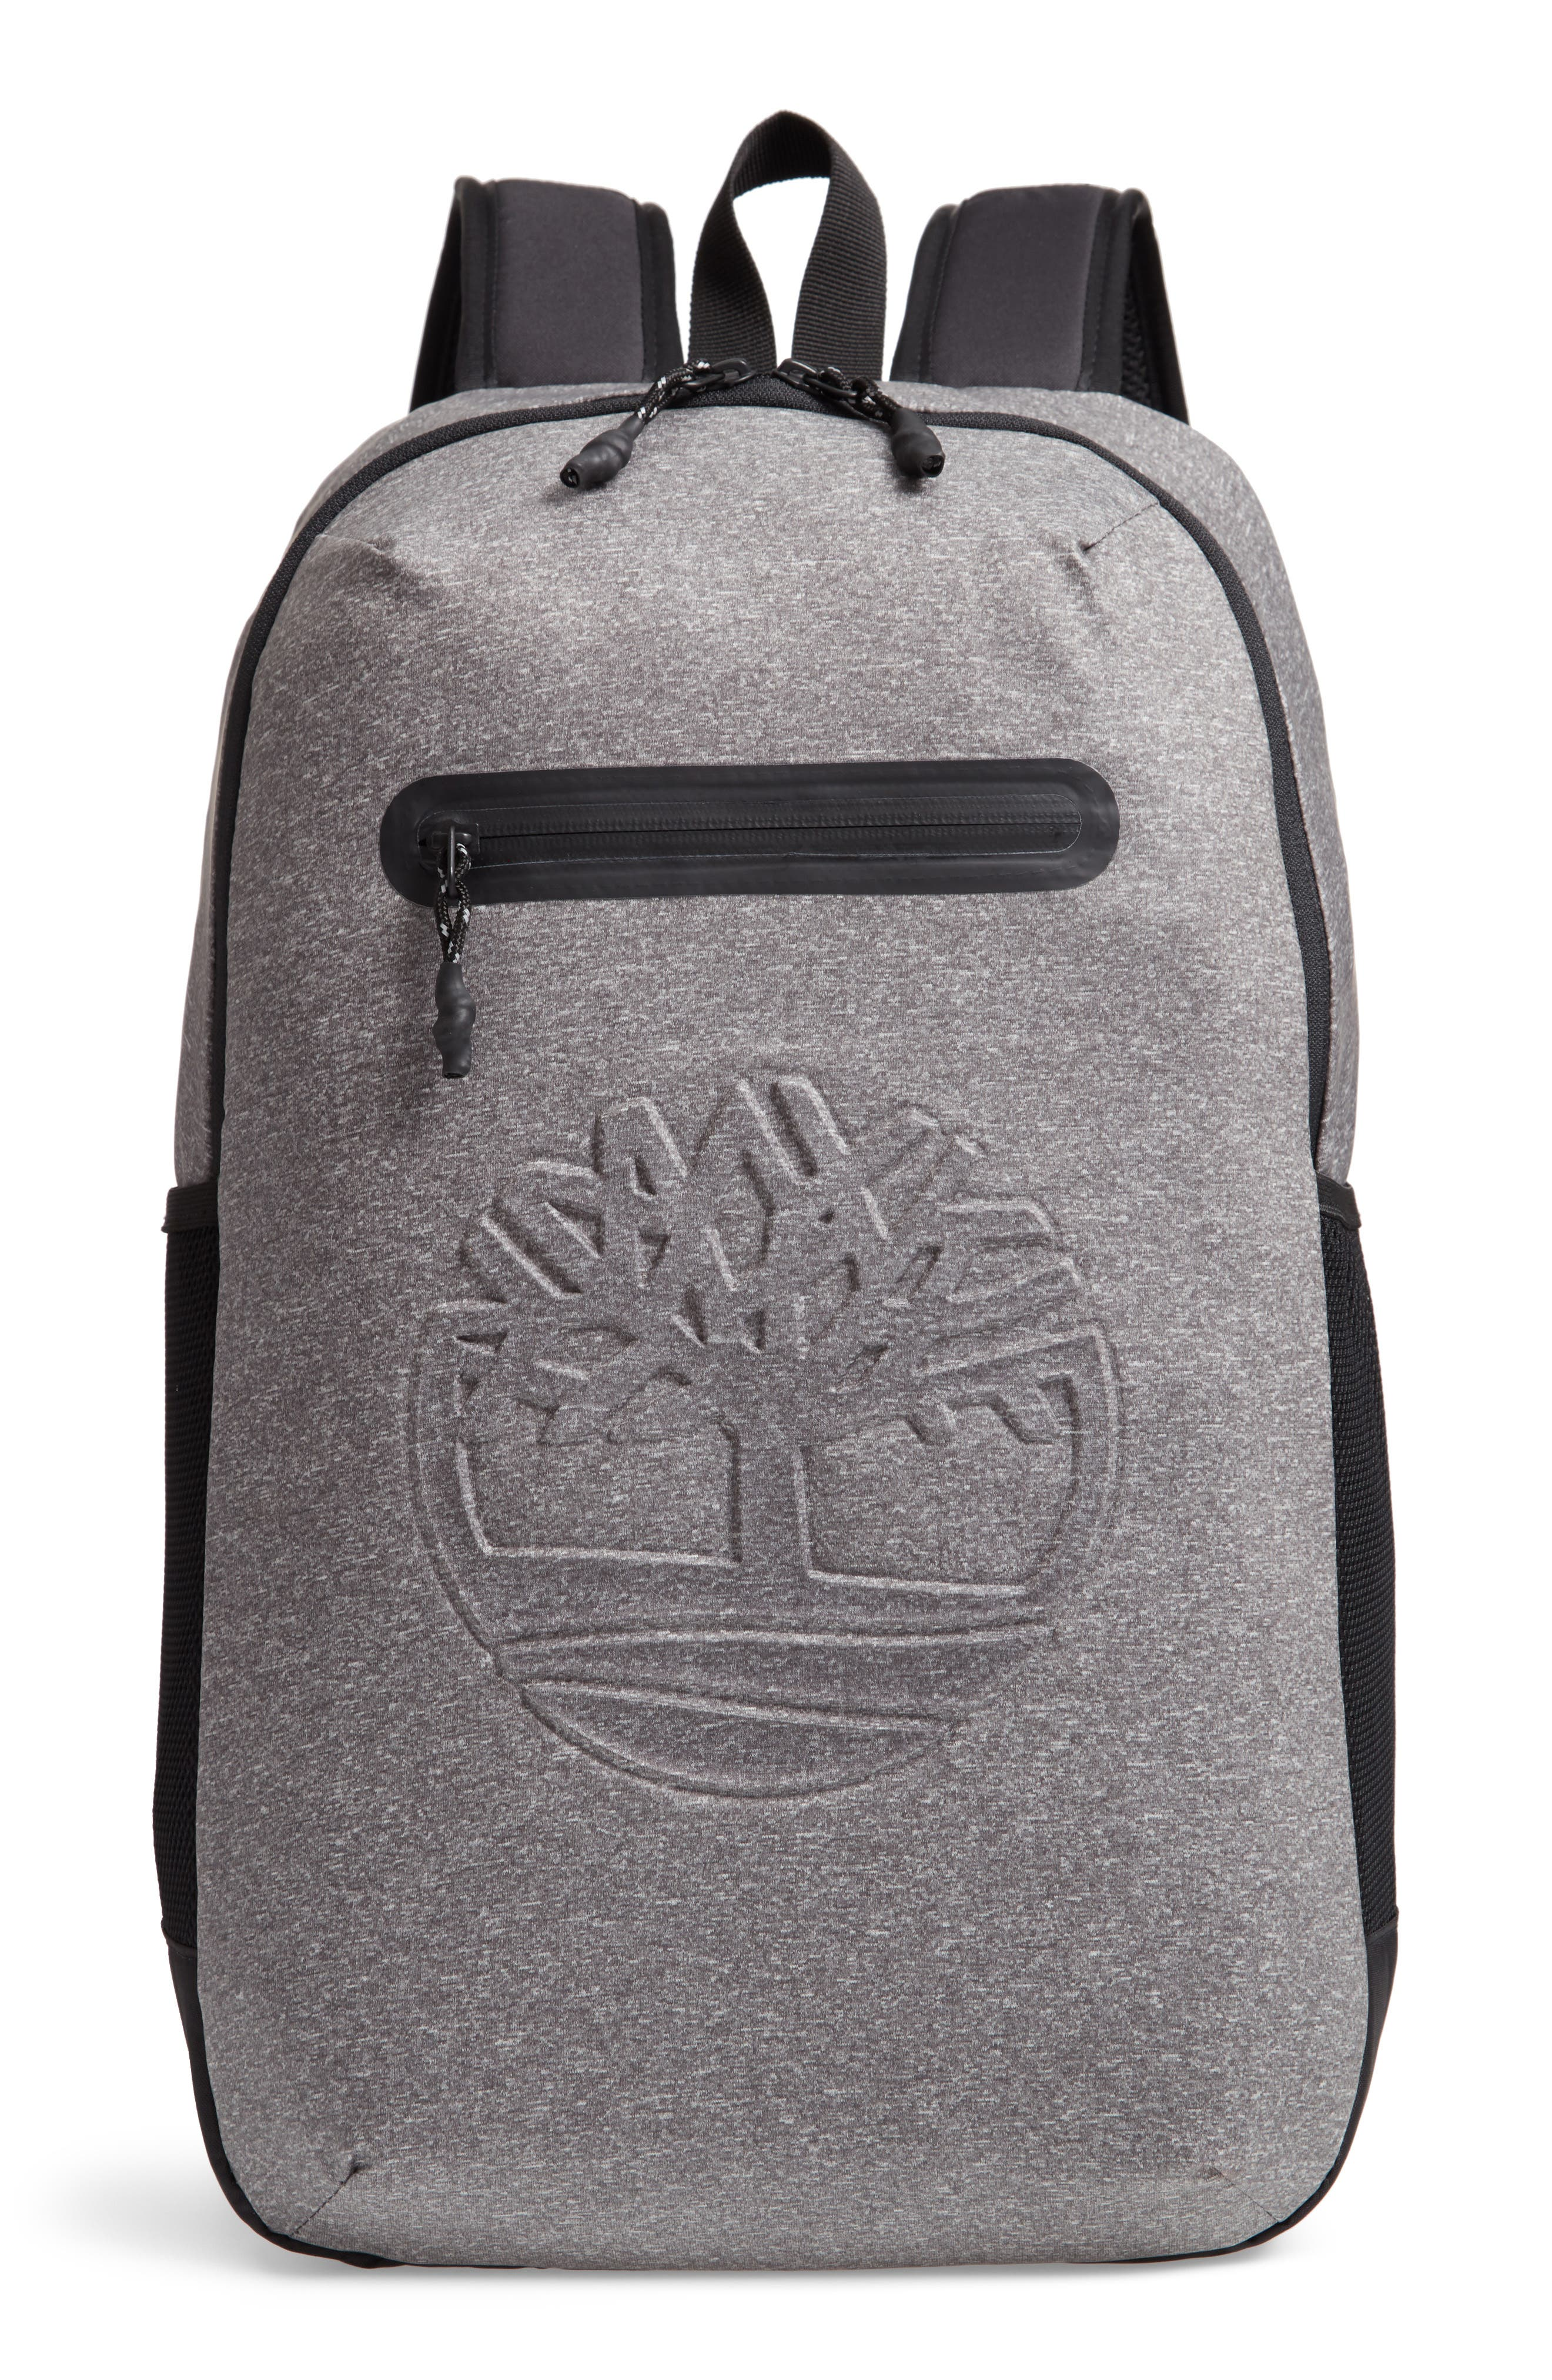 Timberland Top Zip Backpack - Grey